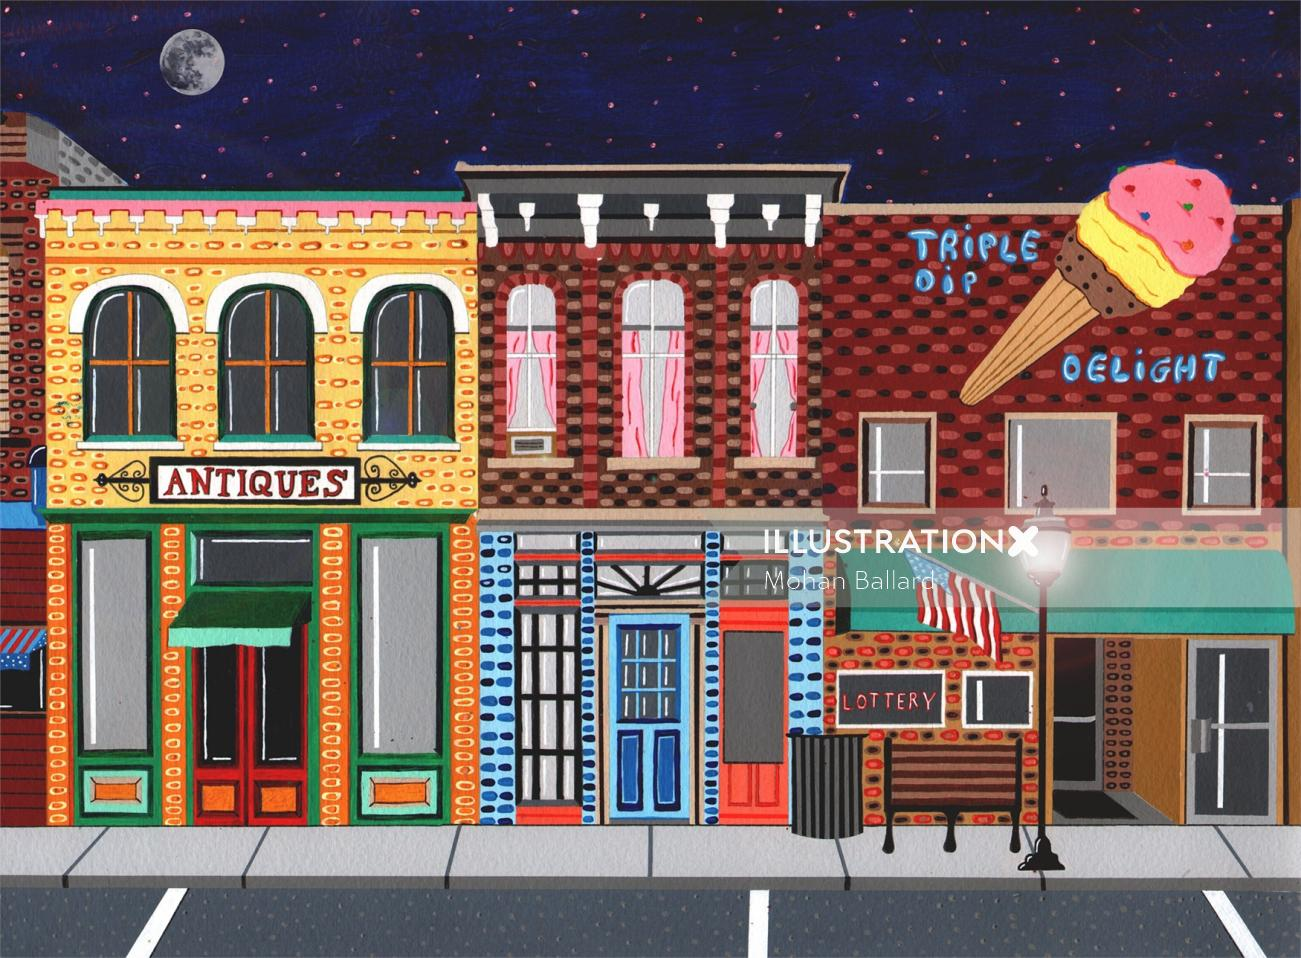 painting of the american street view, triple dip delight